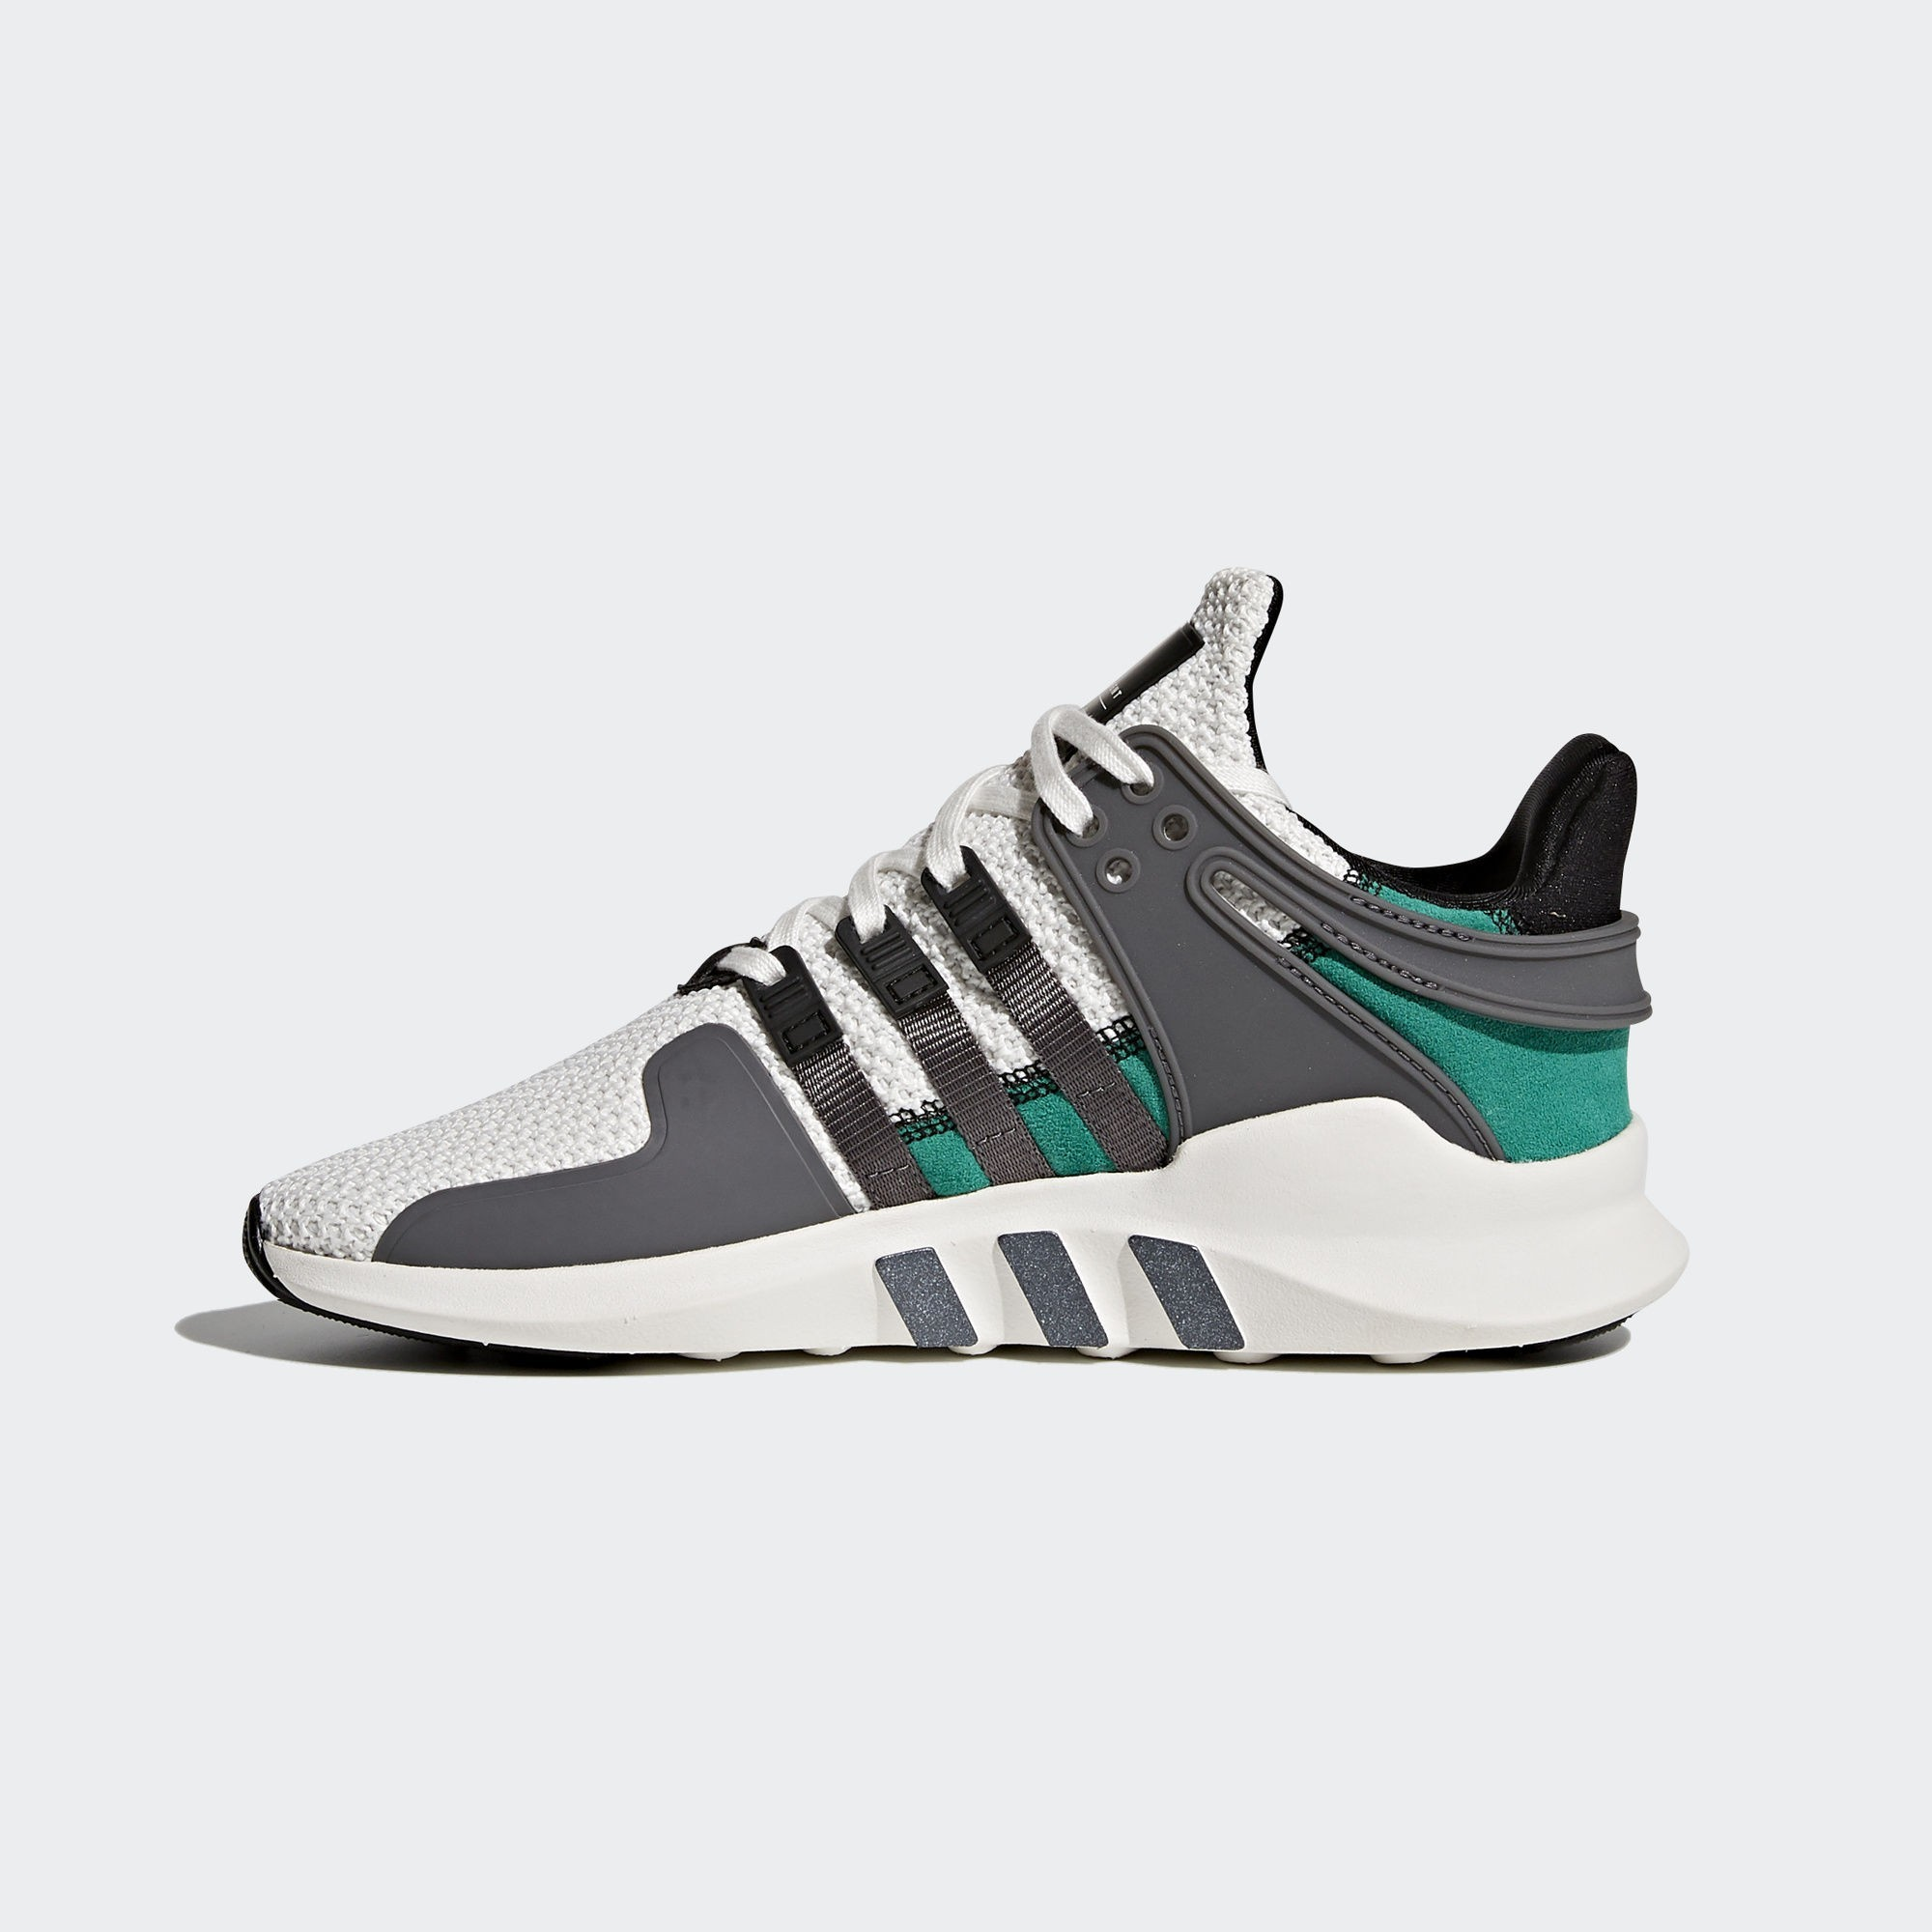 Adidas Mujer EQT Support ADV 'International Mujer Day' CQ2250